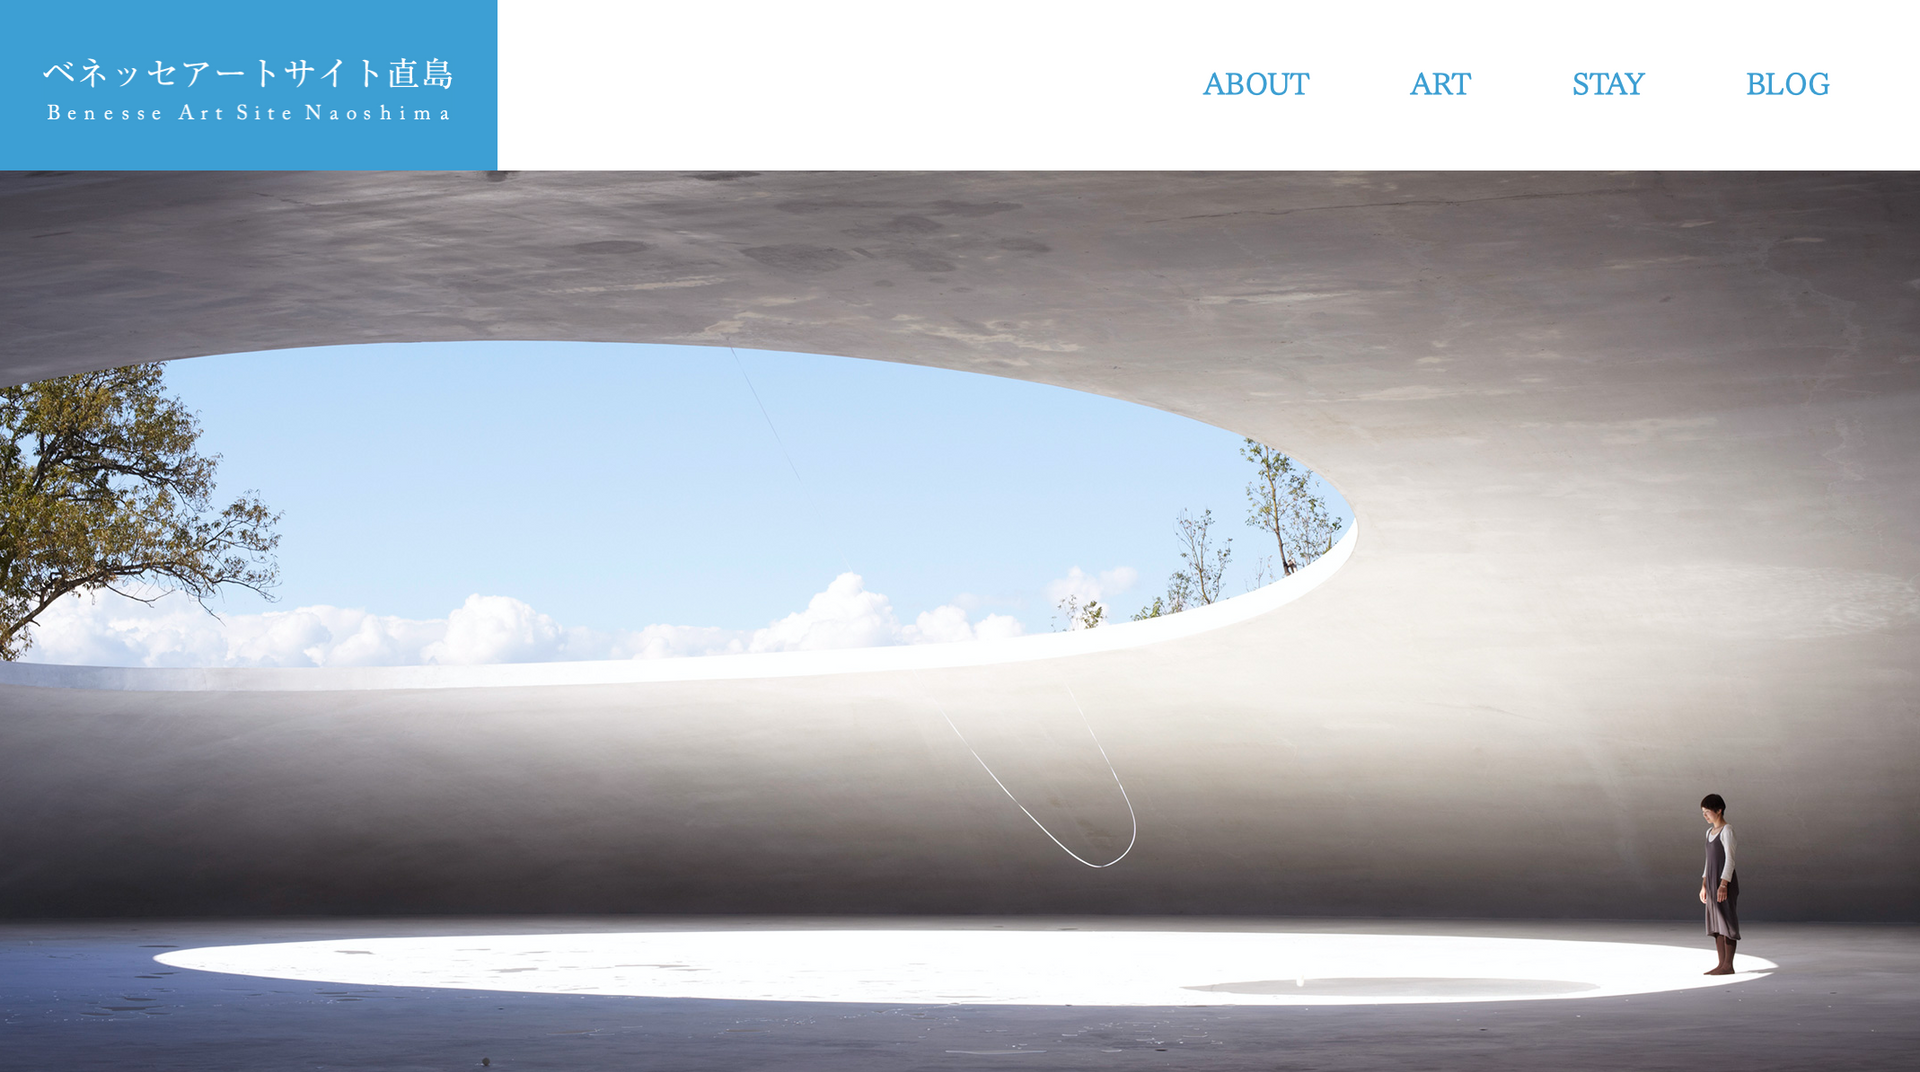 Website renewal for BENESSE ART SITE NAOSHIMA